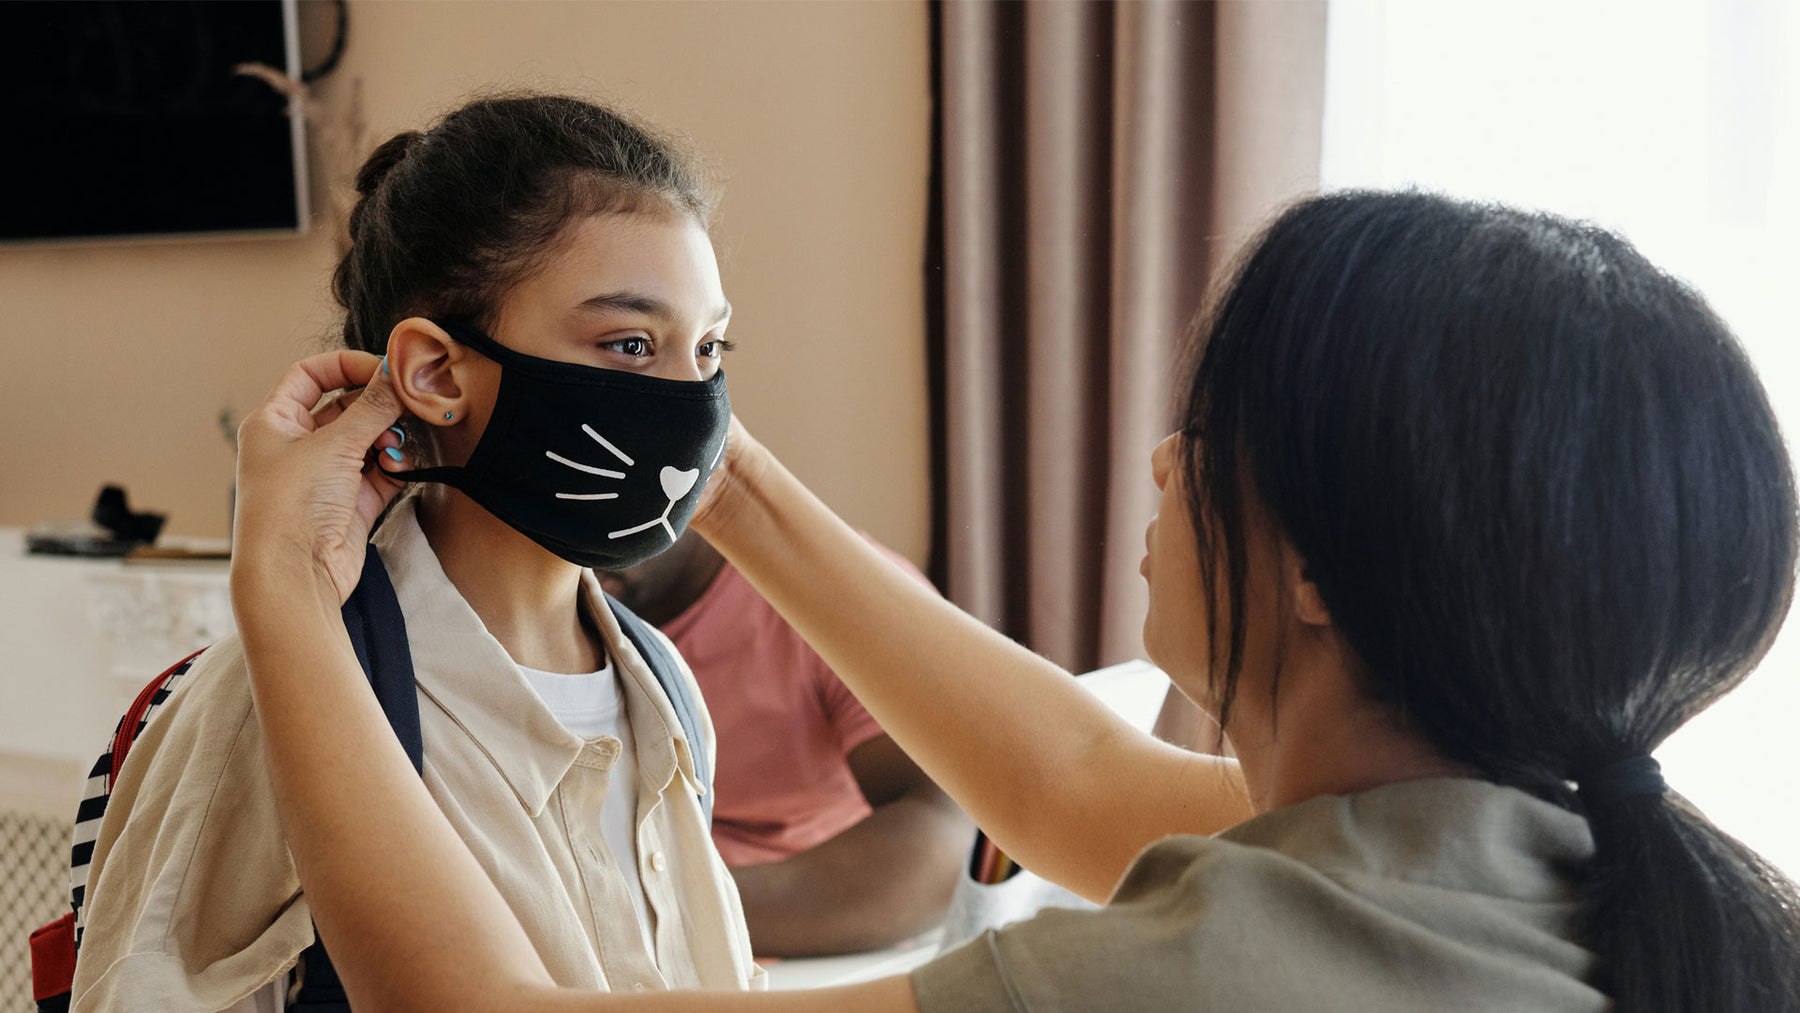 A mother puts a face mask on her daughter.